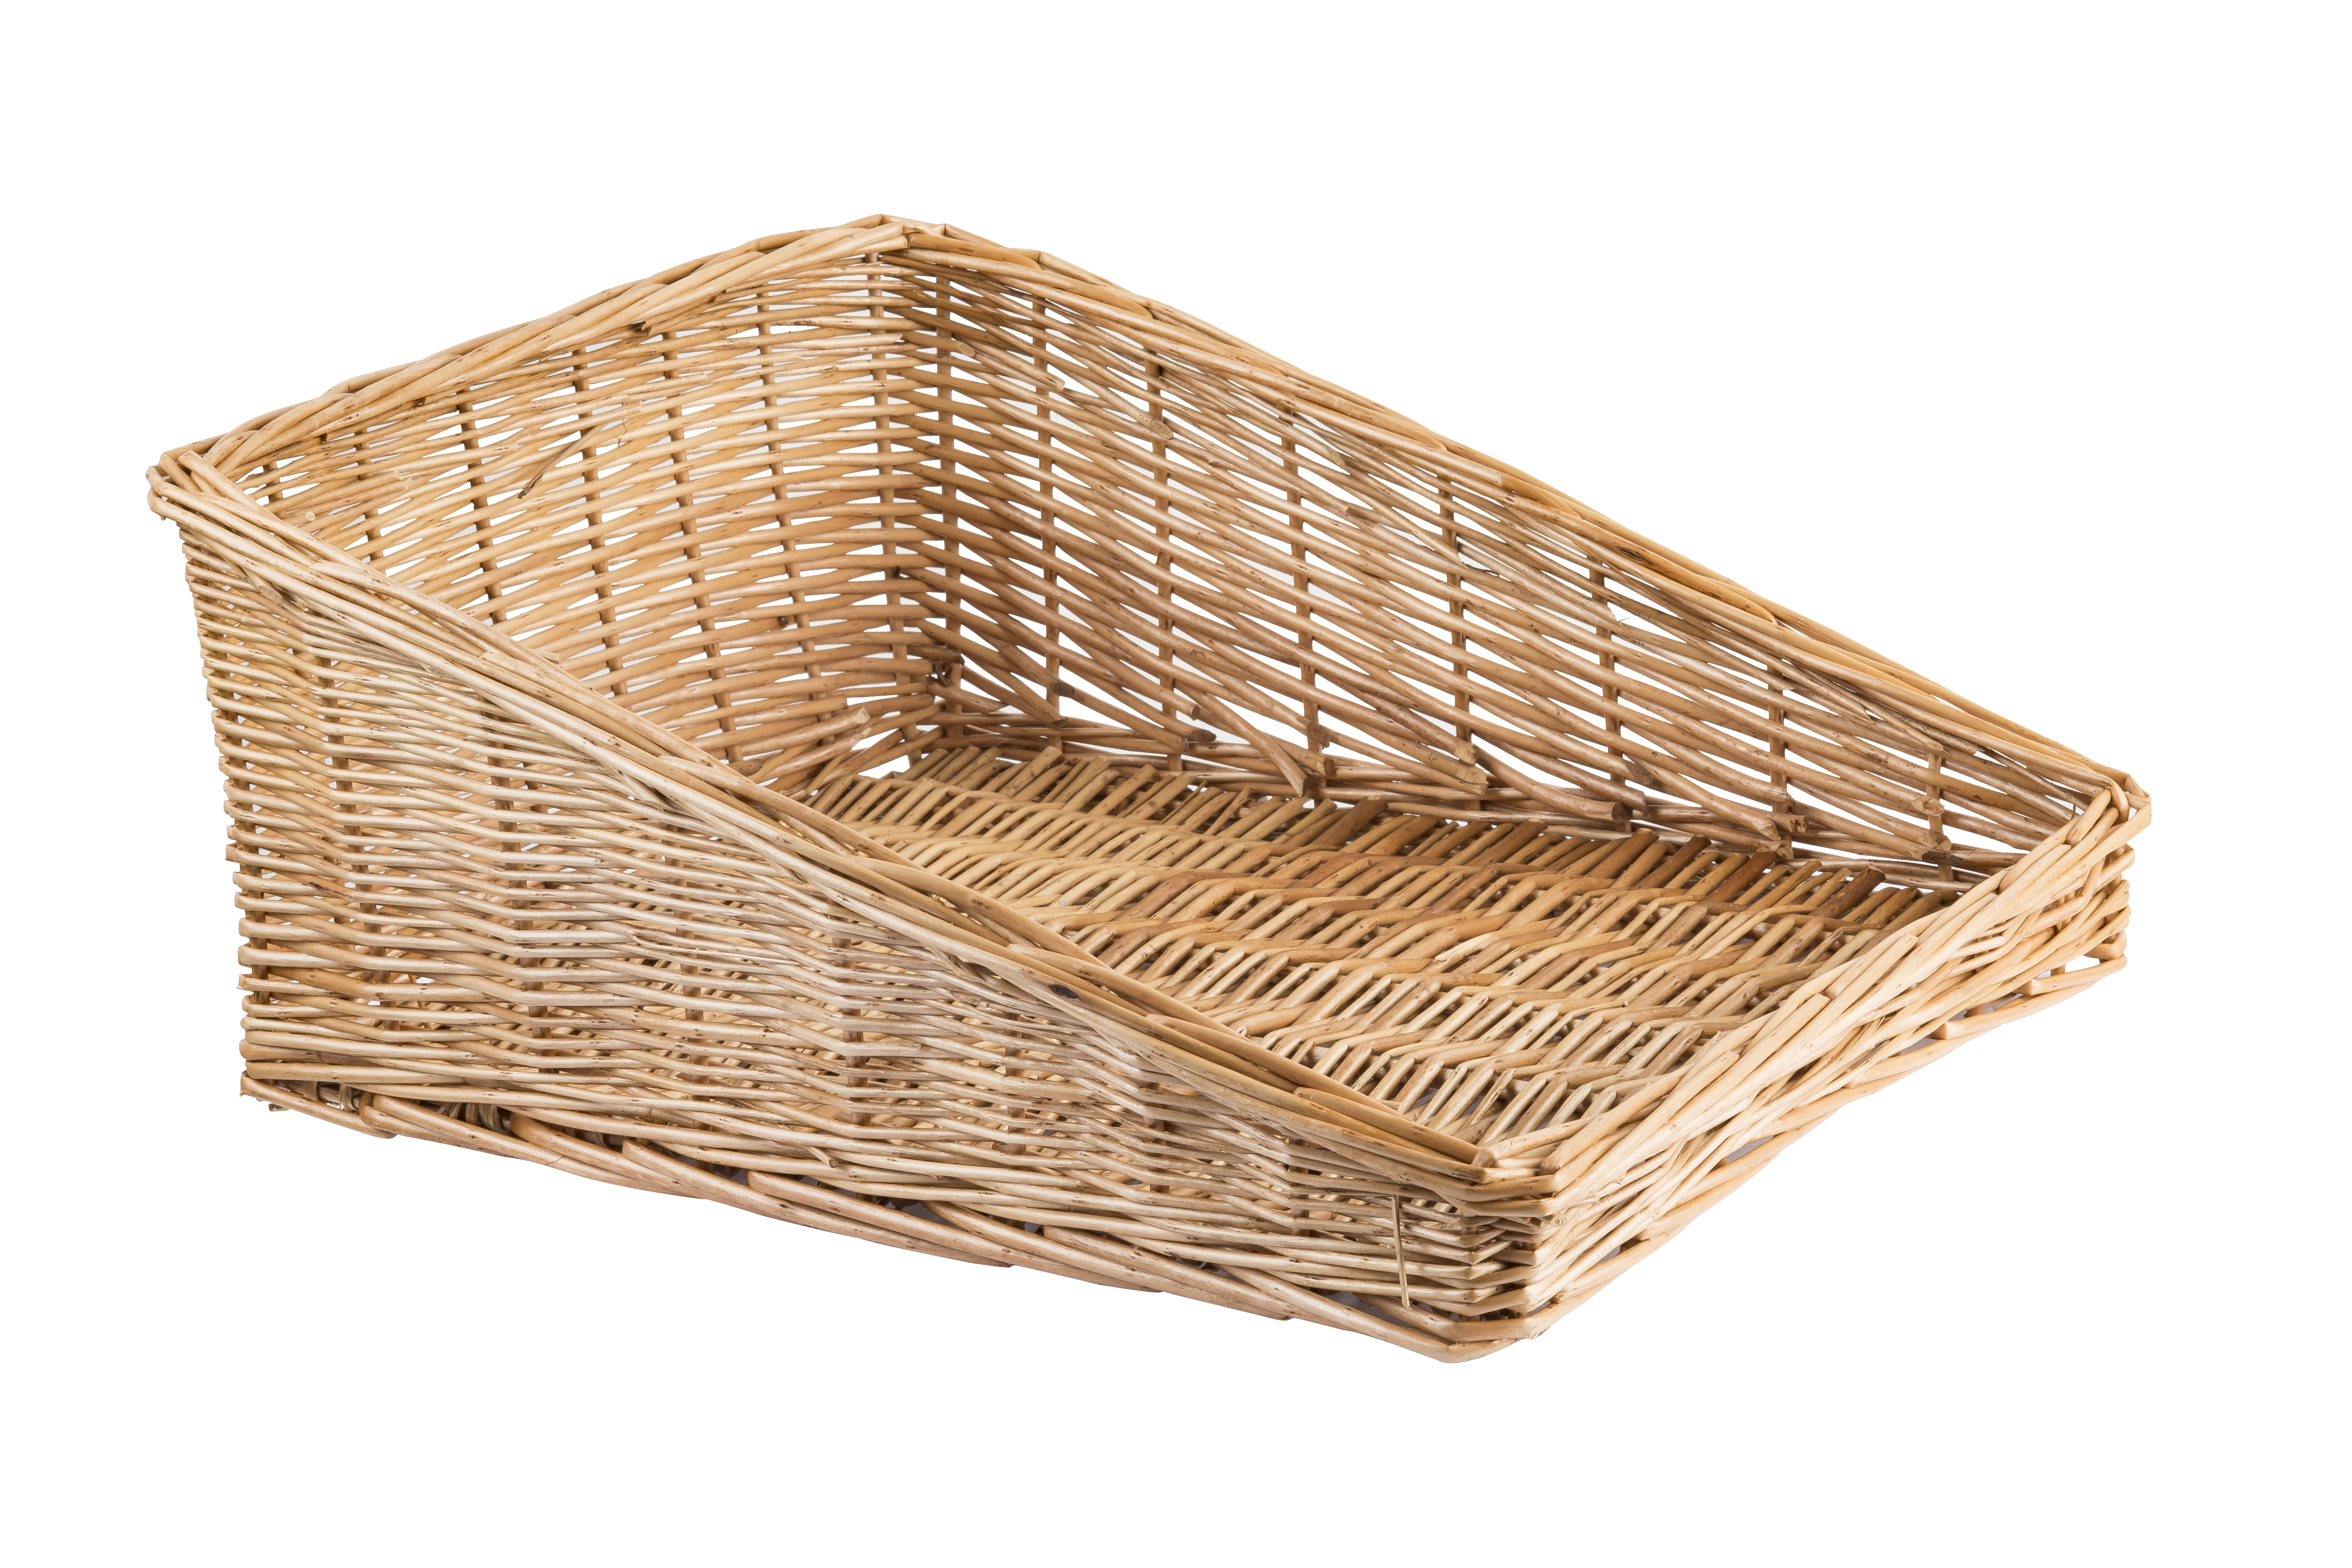 TableCraft Products 161716 hand woven baskets